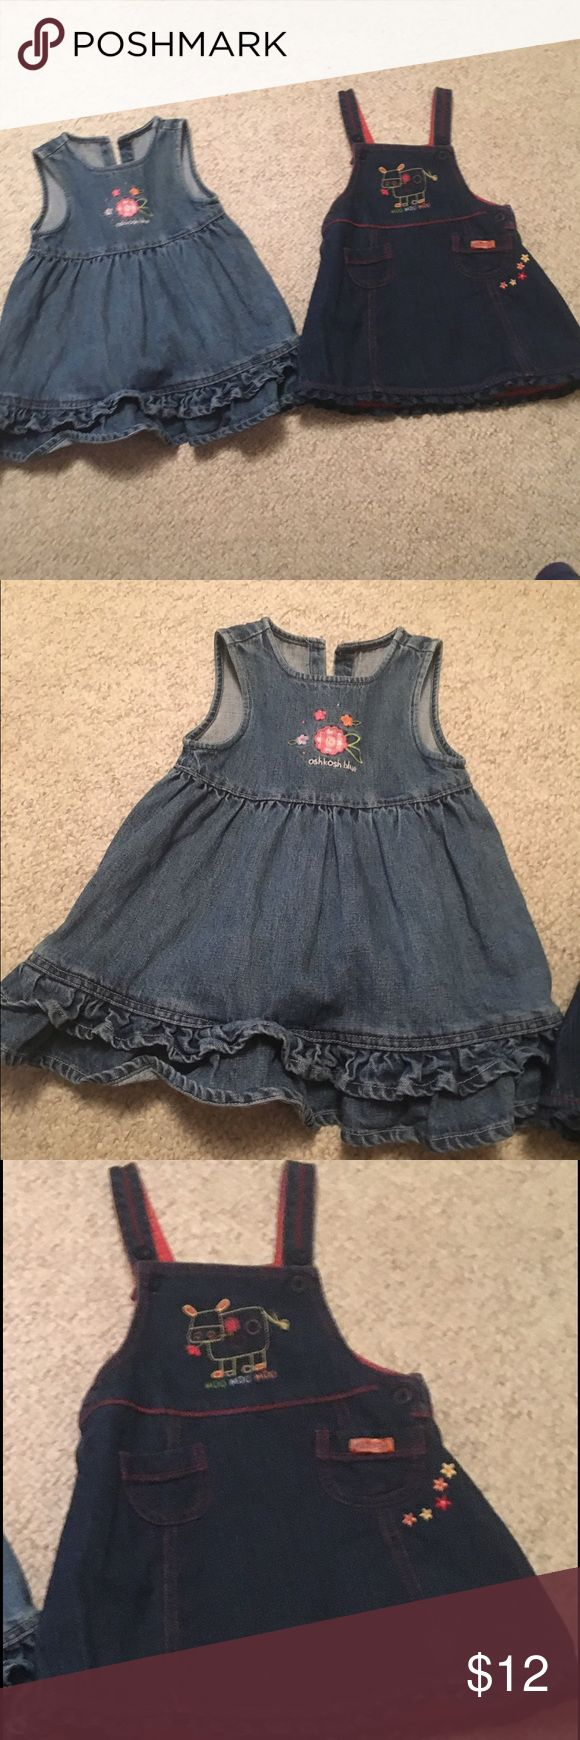 2 dungaree baby girl dresses 24 months old 2 dungaree baby girl dresses 24 months old in nice condition bundle # 314 one of the dresses is by Oshkosh Osh Kosh Dresses Casual